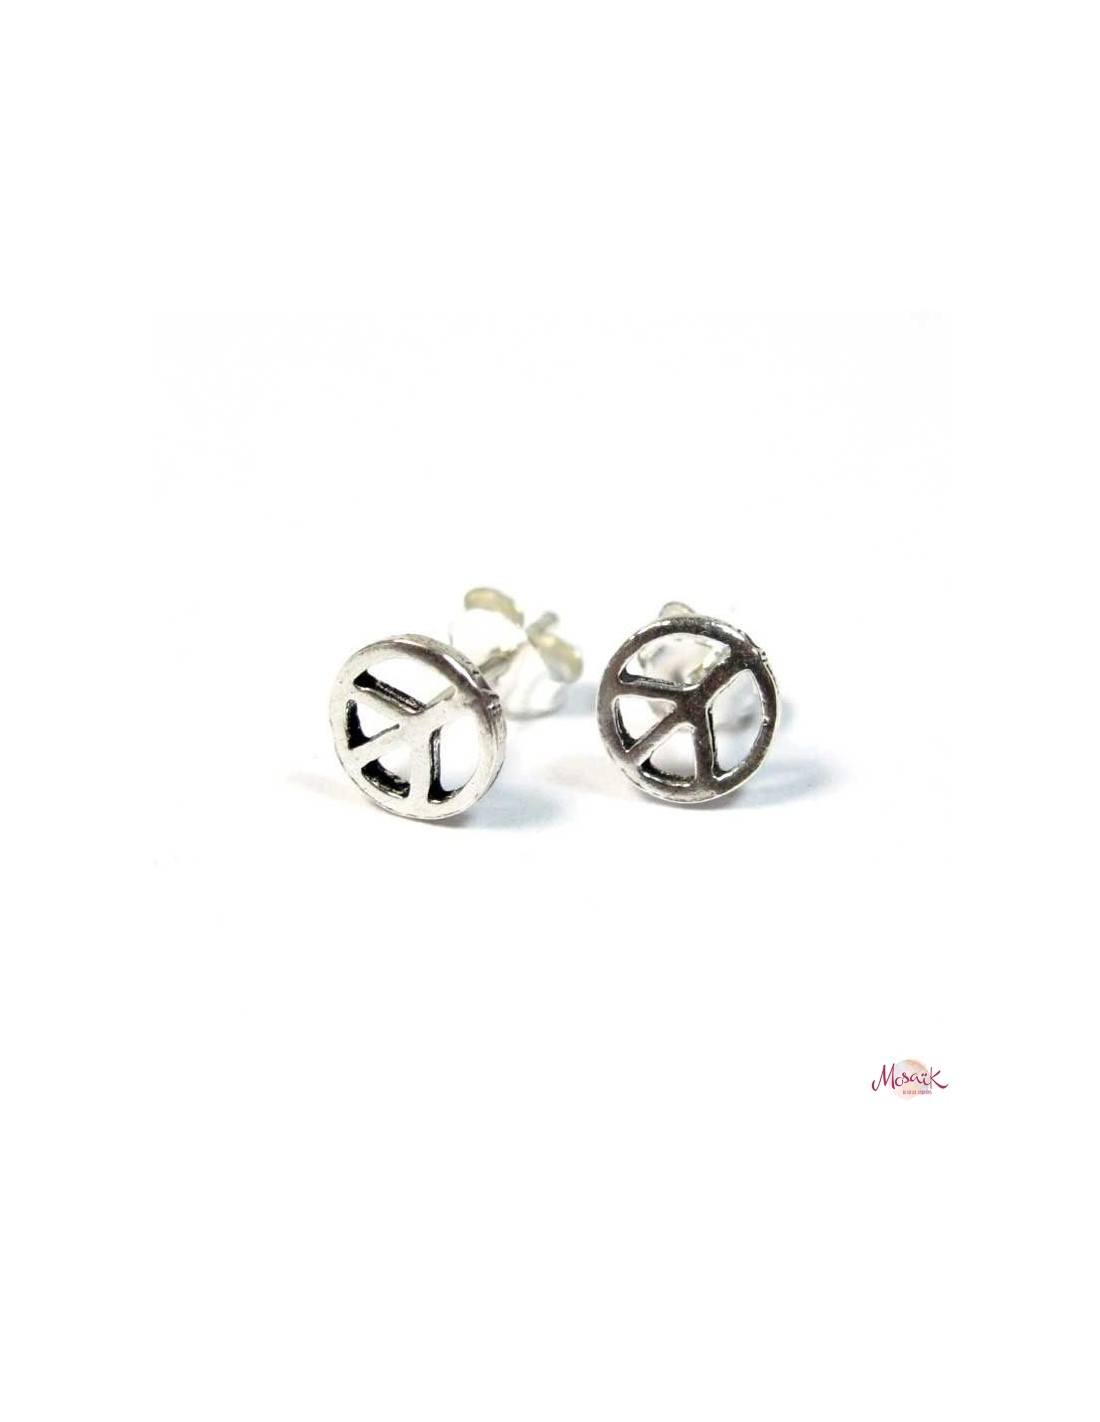 Clous d 39 oreilles argent peace and love peace and love co16 - Boucle d oreille peace and love ...